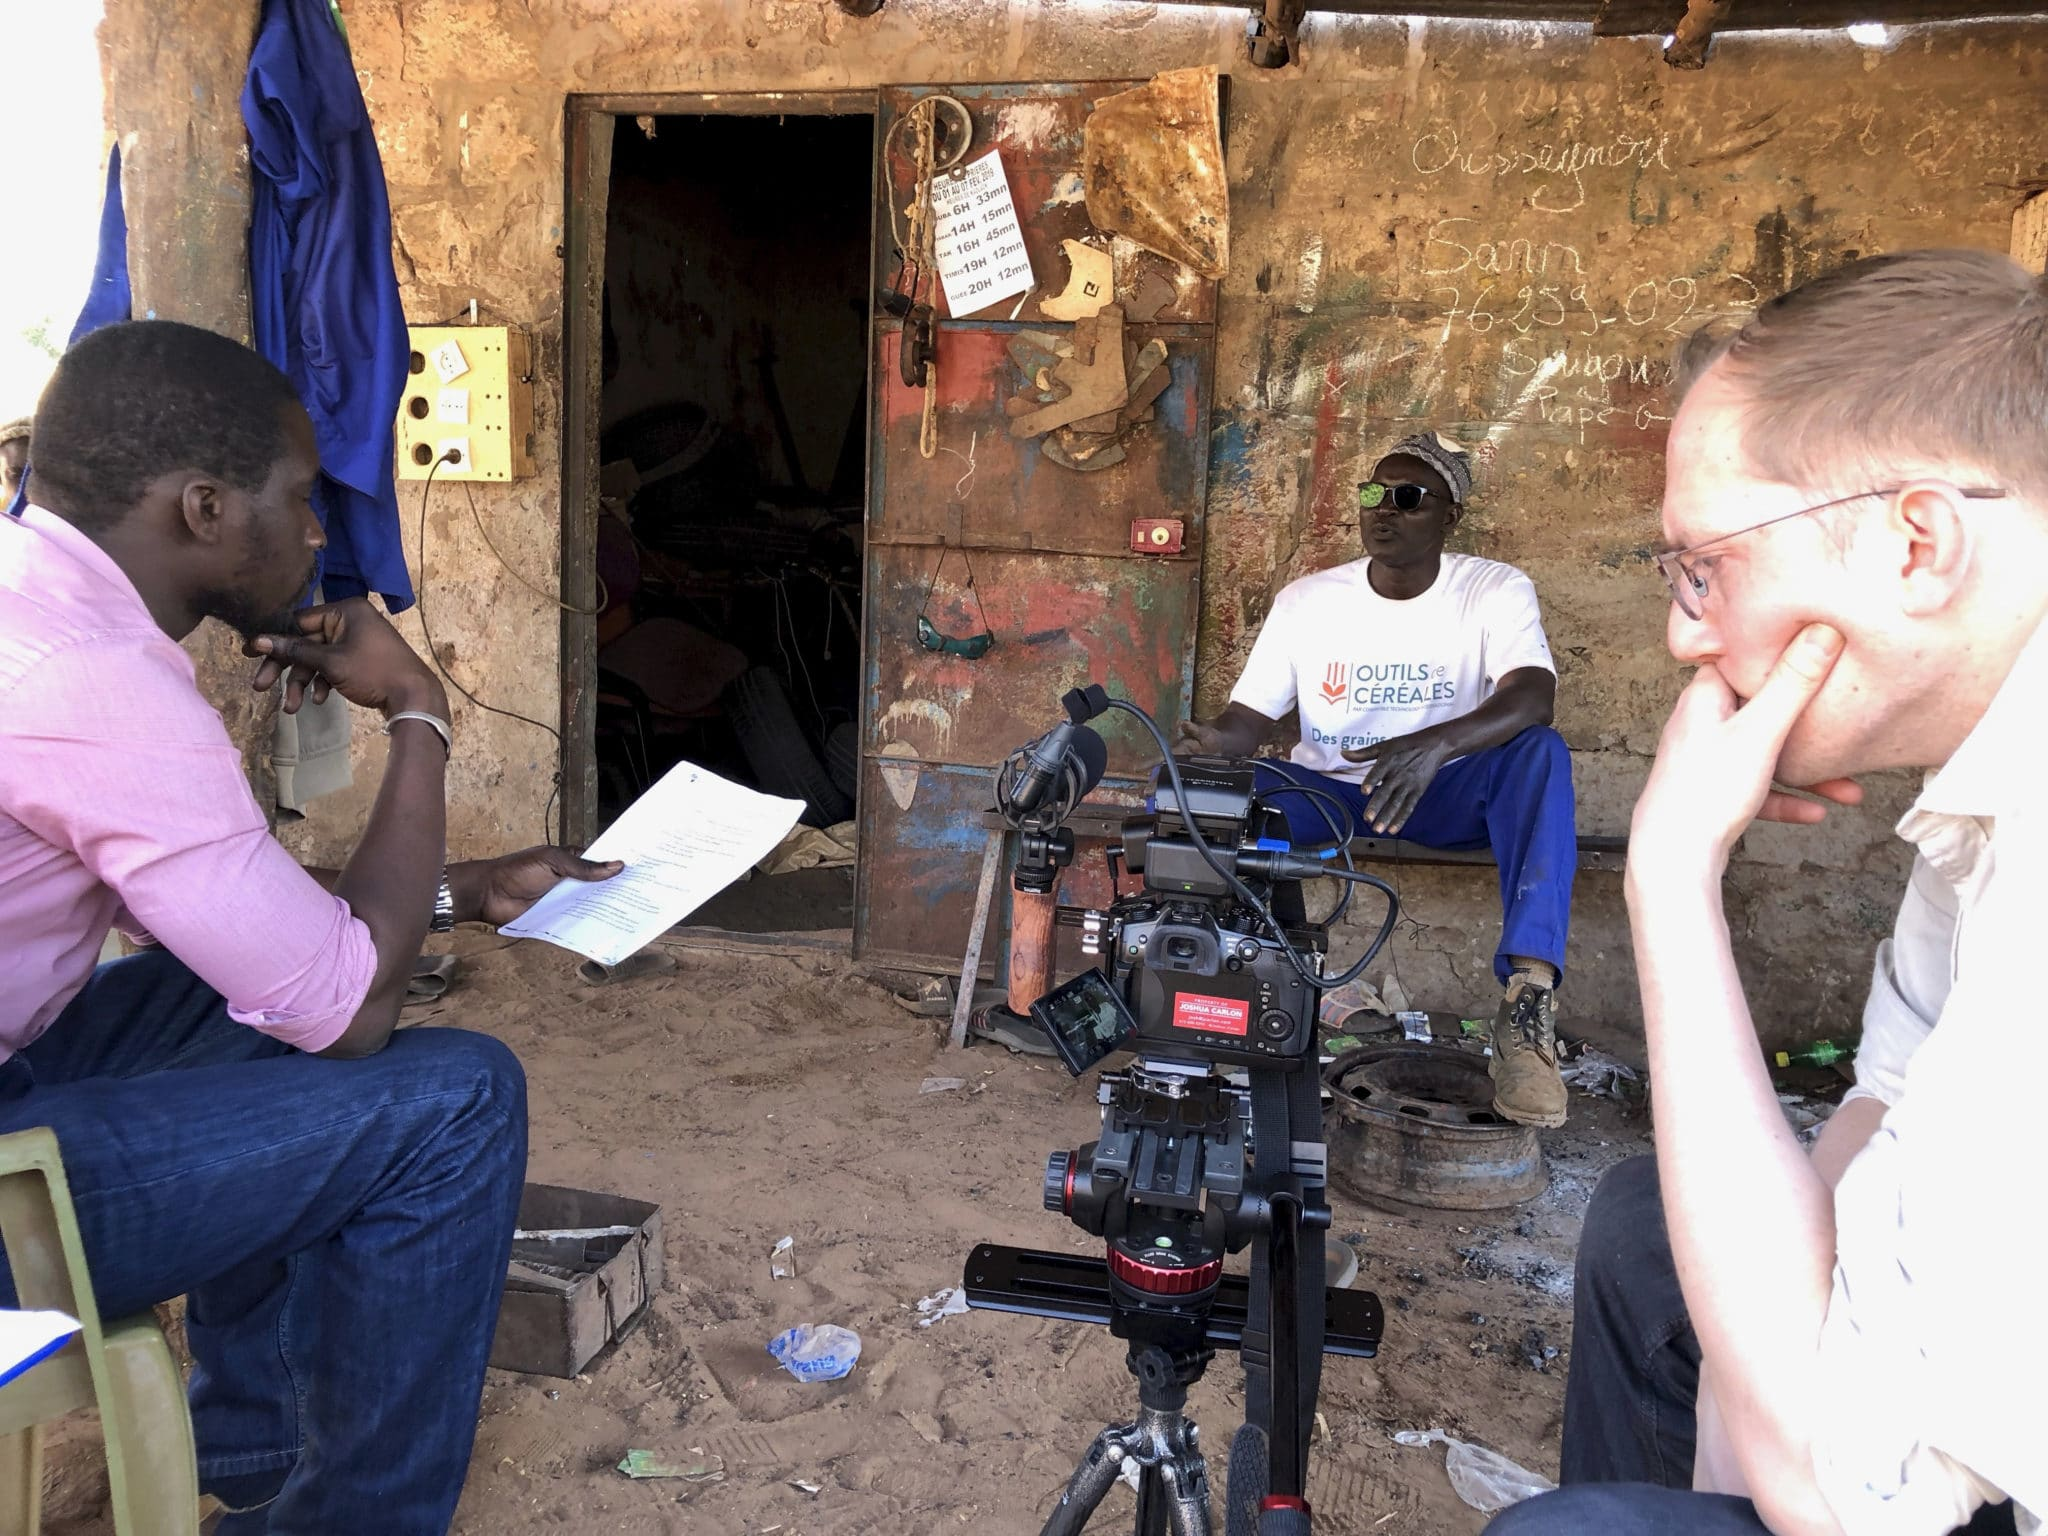 Behind-the-scenes of recent marketing video shoot on location in Senegal with local translator and Minneapolis-based videographer.